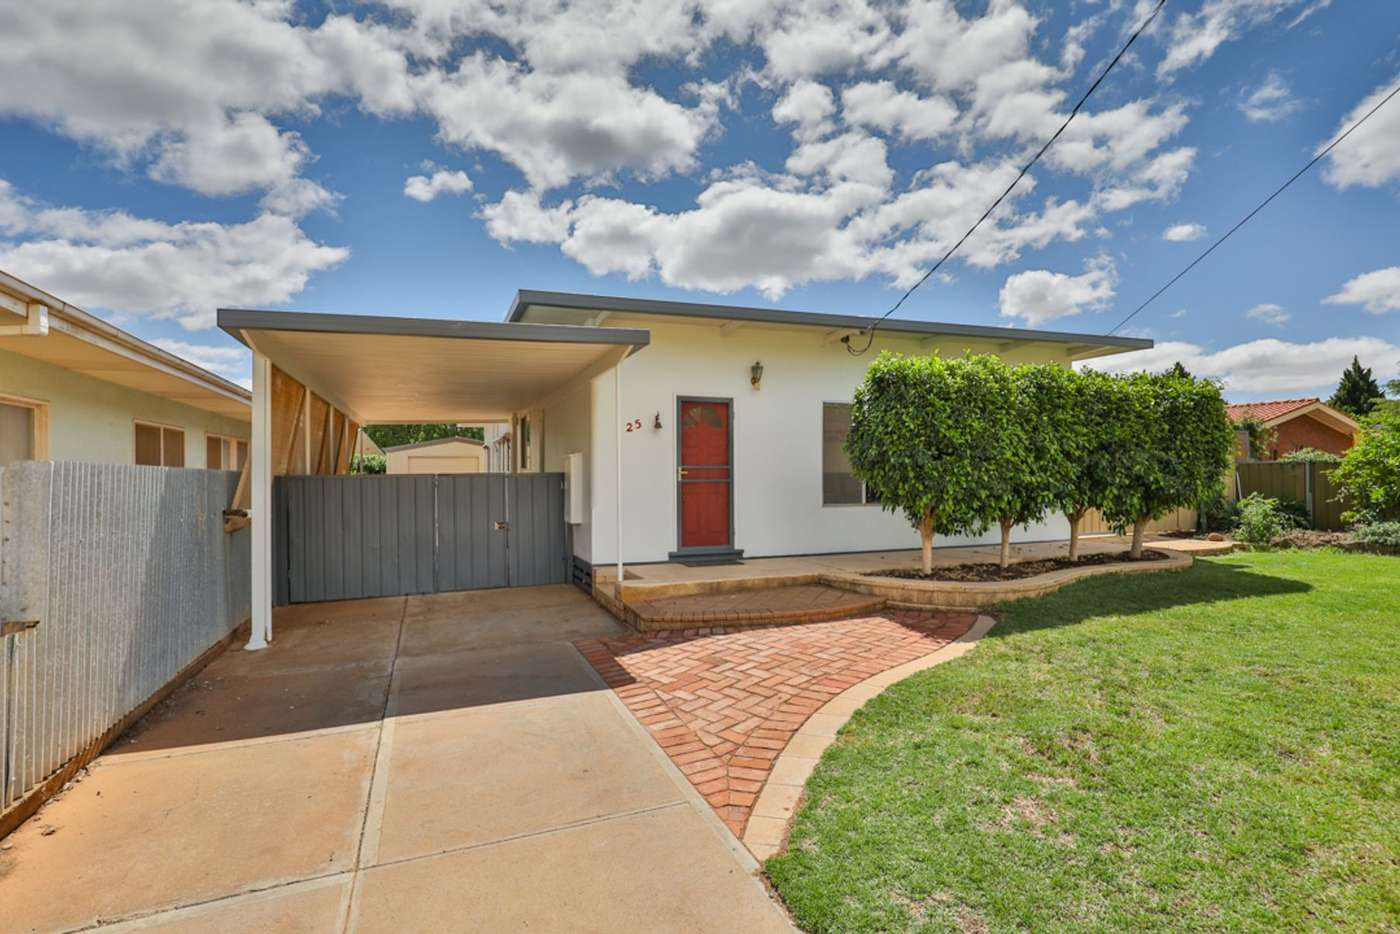 Main view of Homely house listing, 25 McKendrick Avenue, Mildura VIC 3500